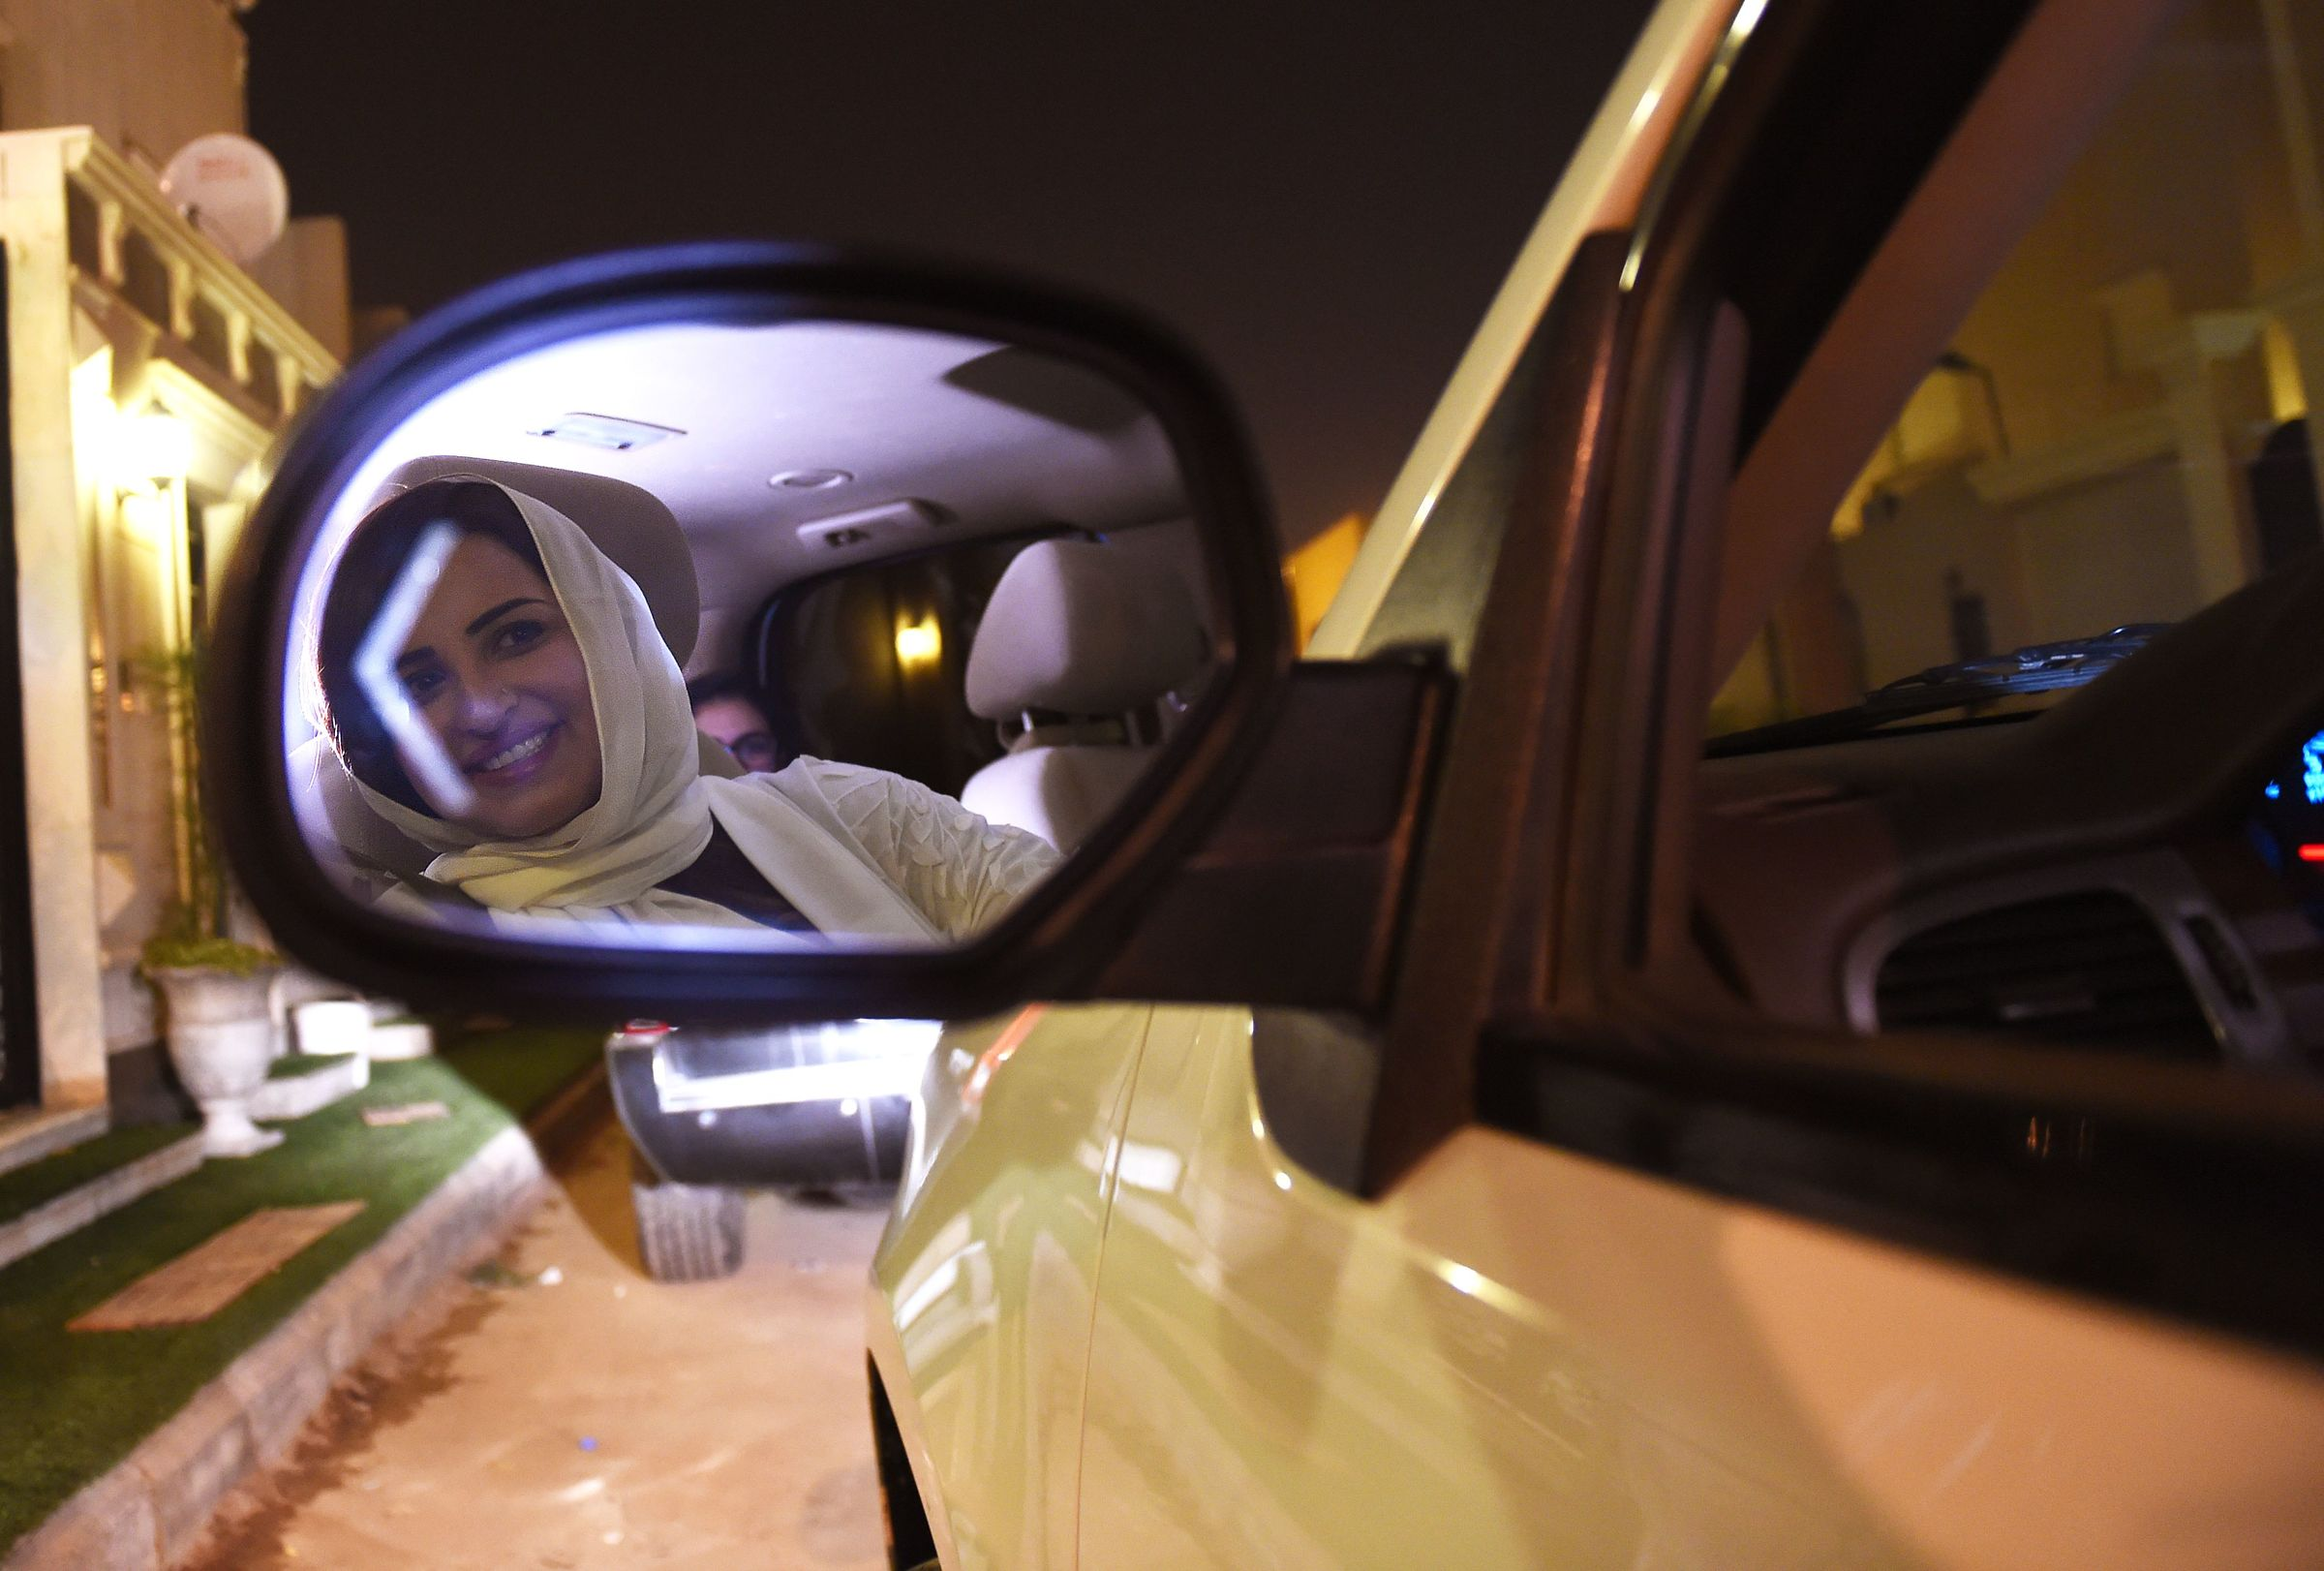 Saudi Samar Al-Moqren is seen in her car's rear-view mirror as she drives through Riyadh city's streets for the first time just after midnight, June 24, 2018, when the law allowing women to drive took effect.  Saudi Arabia will allow women to drive from June 24, ending the world's only ban on female motorists, a historic reform marred by what rights groups call an expanding crackdown on activists.  / AFP PHOTO / FAYEZ NURELDINE